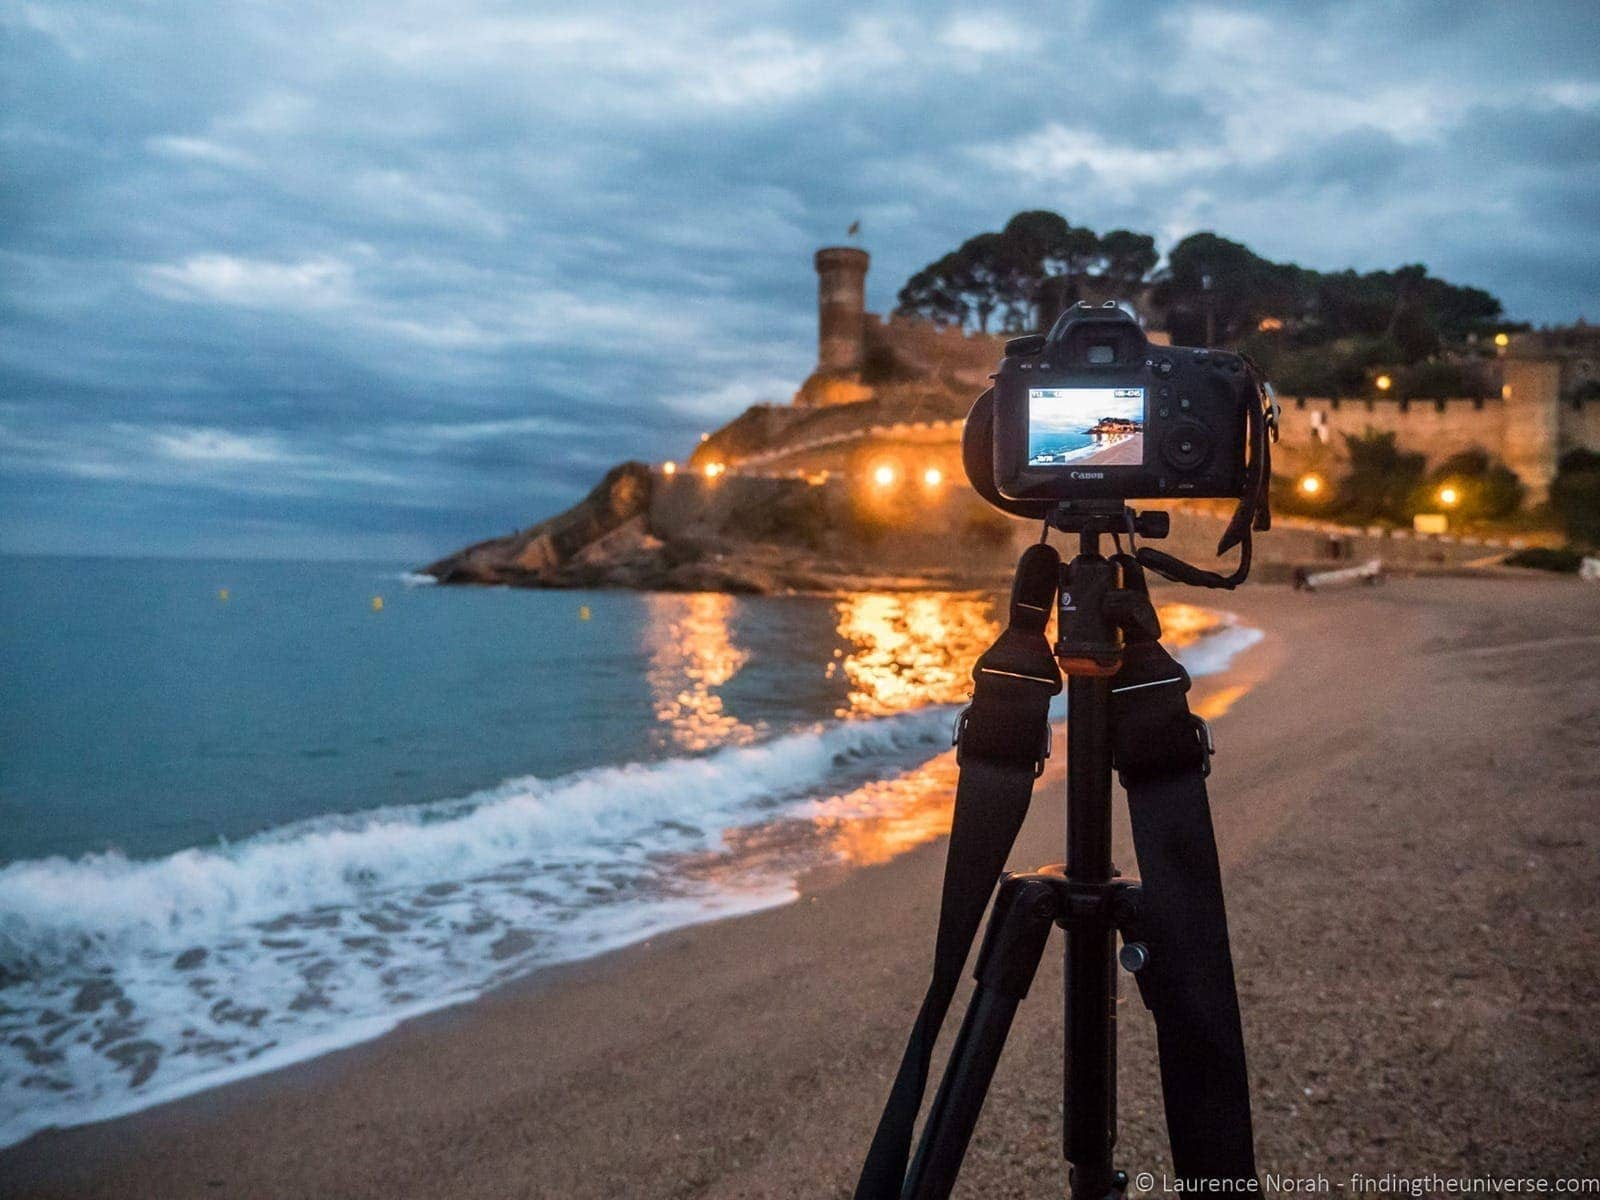 Shooting Tossa de Mar castle at night with Vanguard